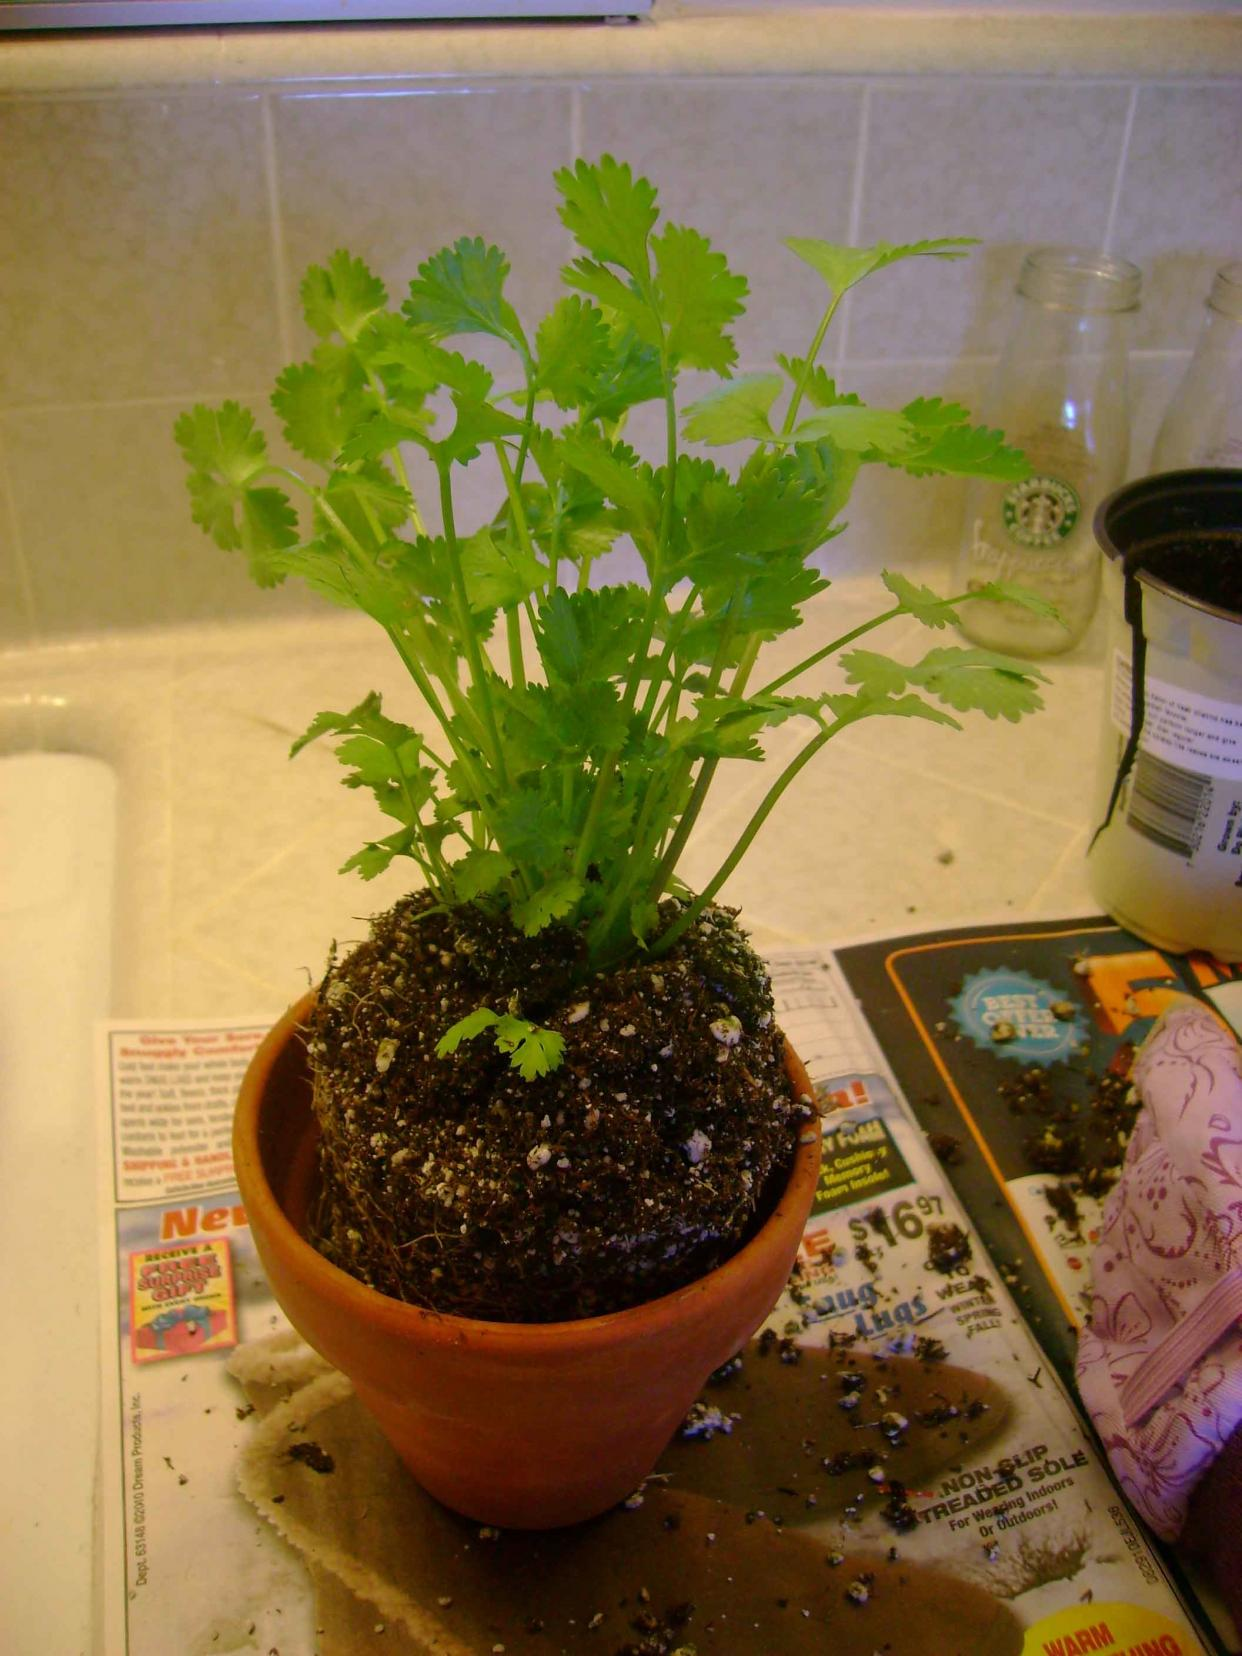 Top Winter How To Harvest Cilantro Green Fingers Gfinger Is Most Growing Cilantro S During Winter Growing Cilantro S houzz-03 Growing Cilantro Indoors